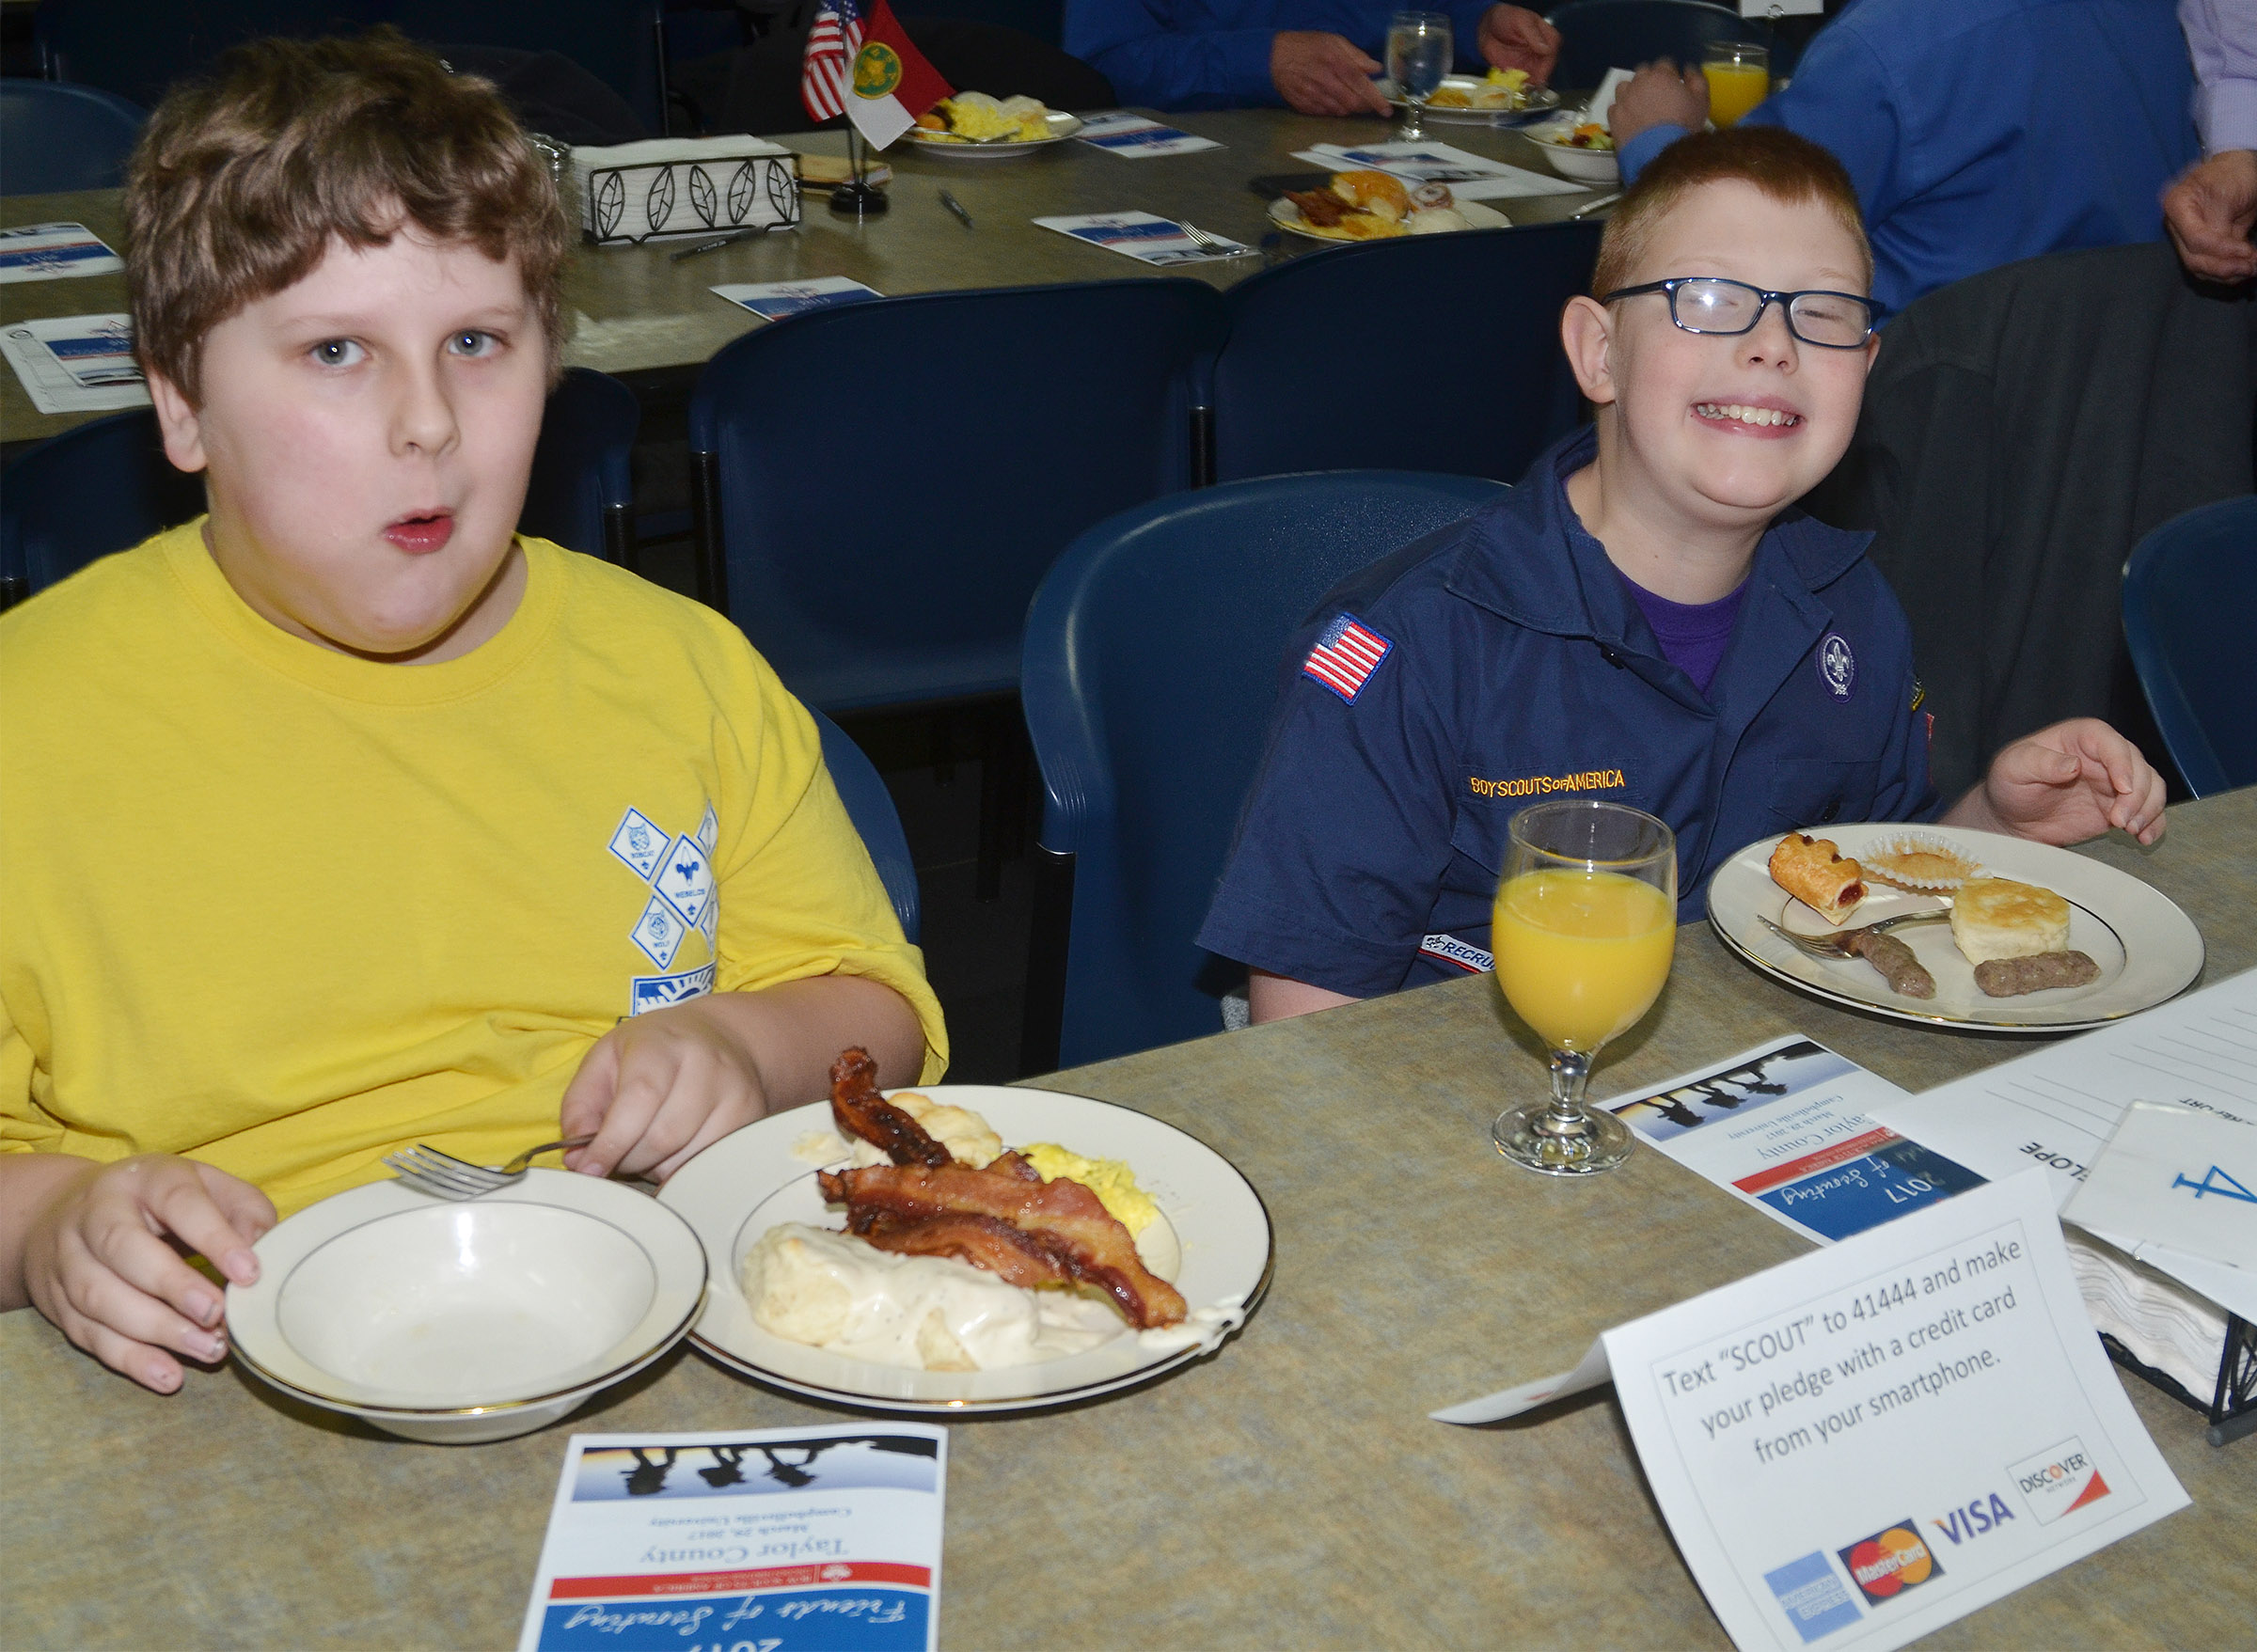 Campbellsville Middle School fourth-grader Zeke Harris, at left, and Campbellsville Elementary School third-grader Aidan Phillips enjoy breakfast.